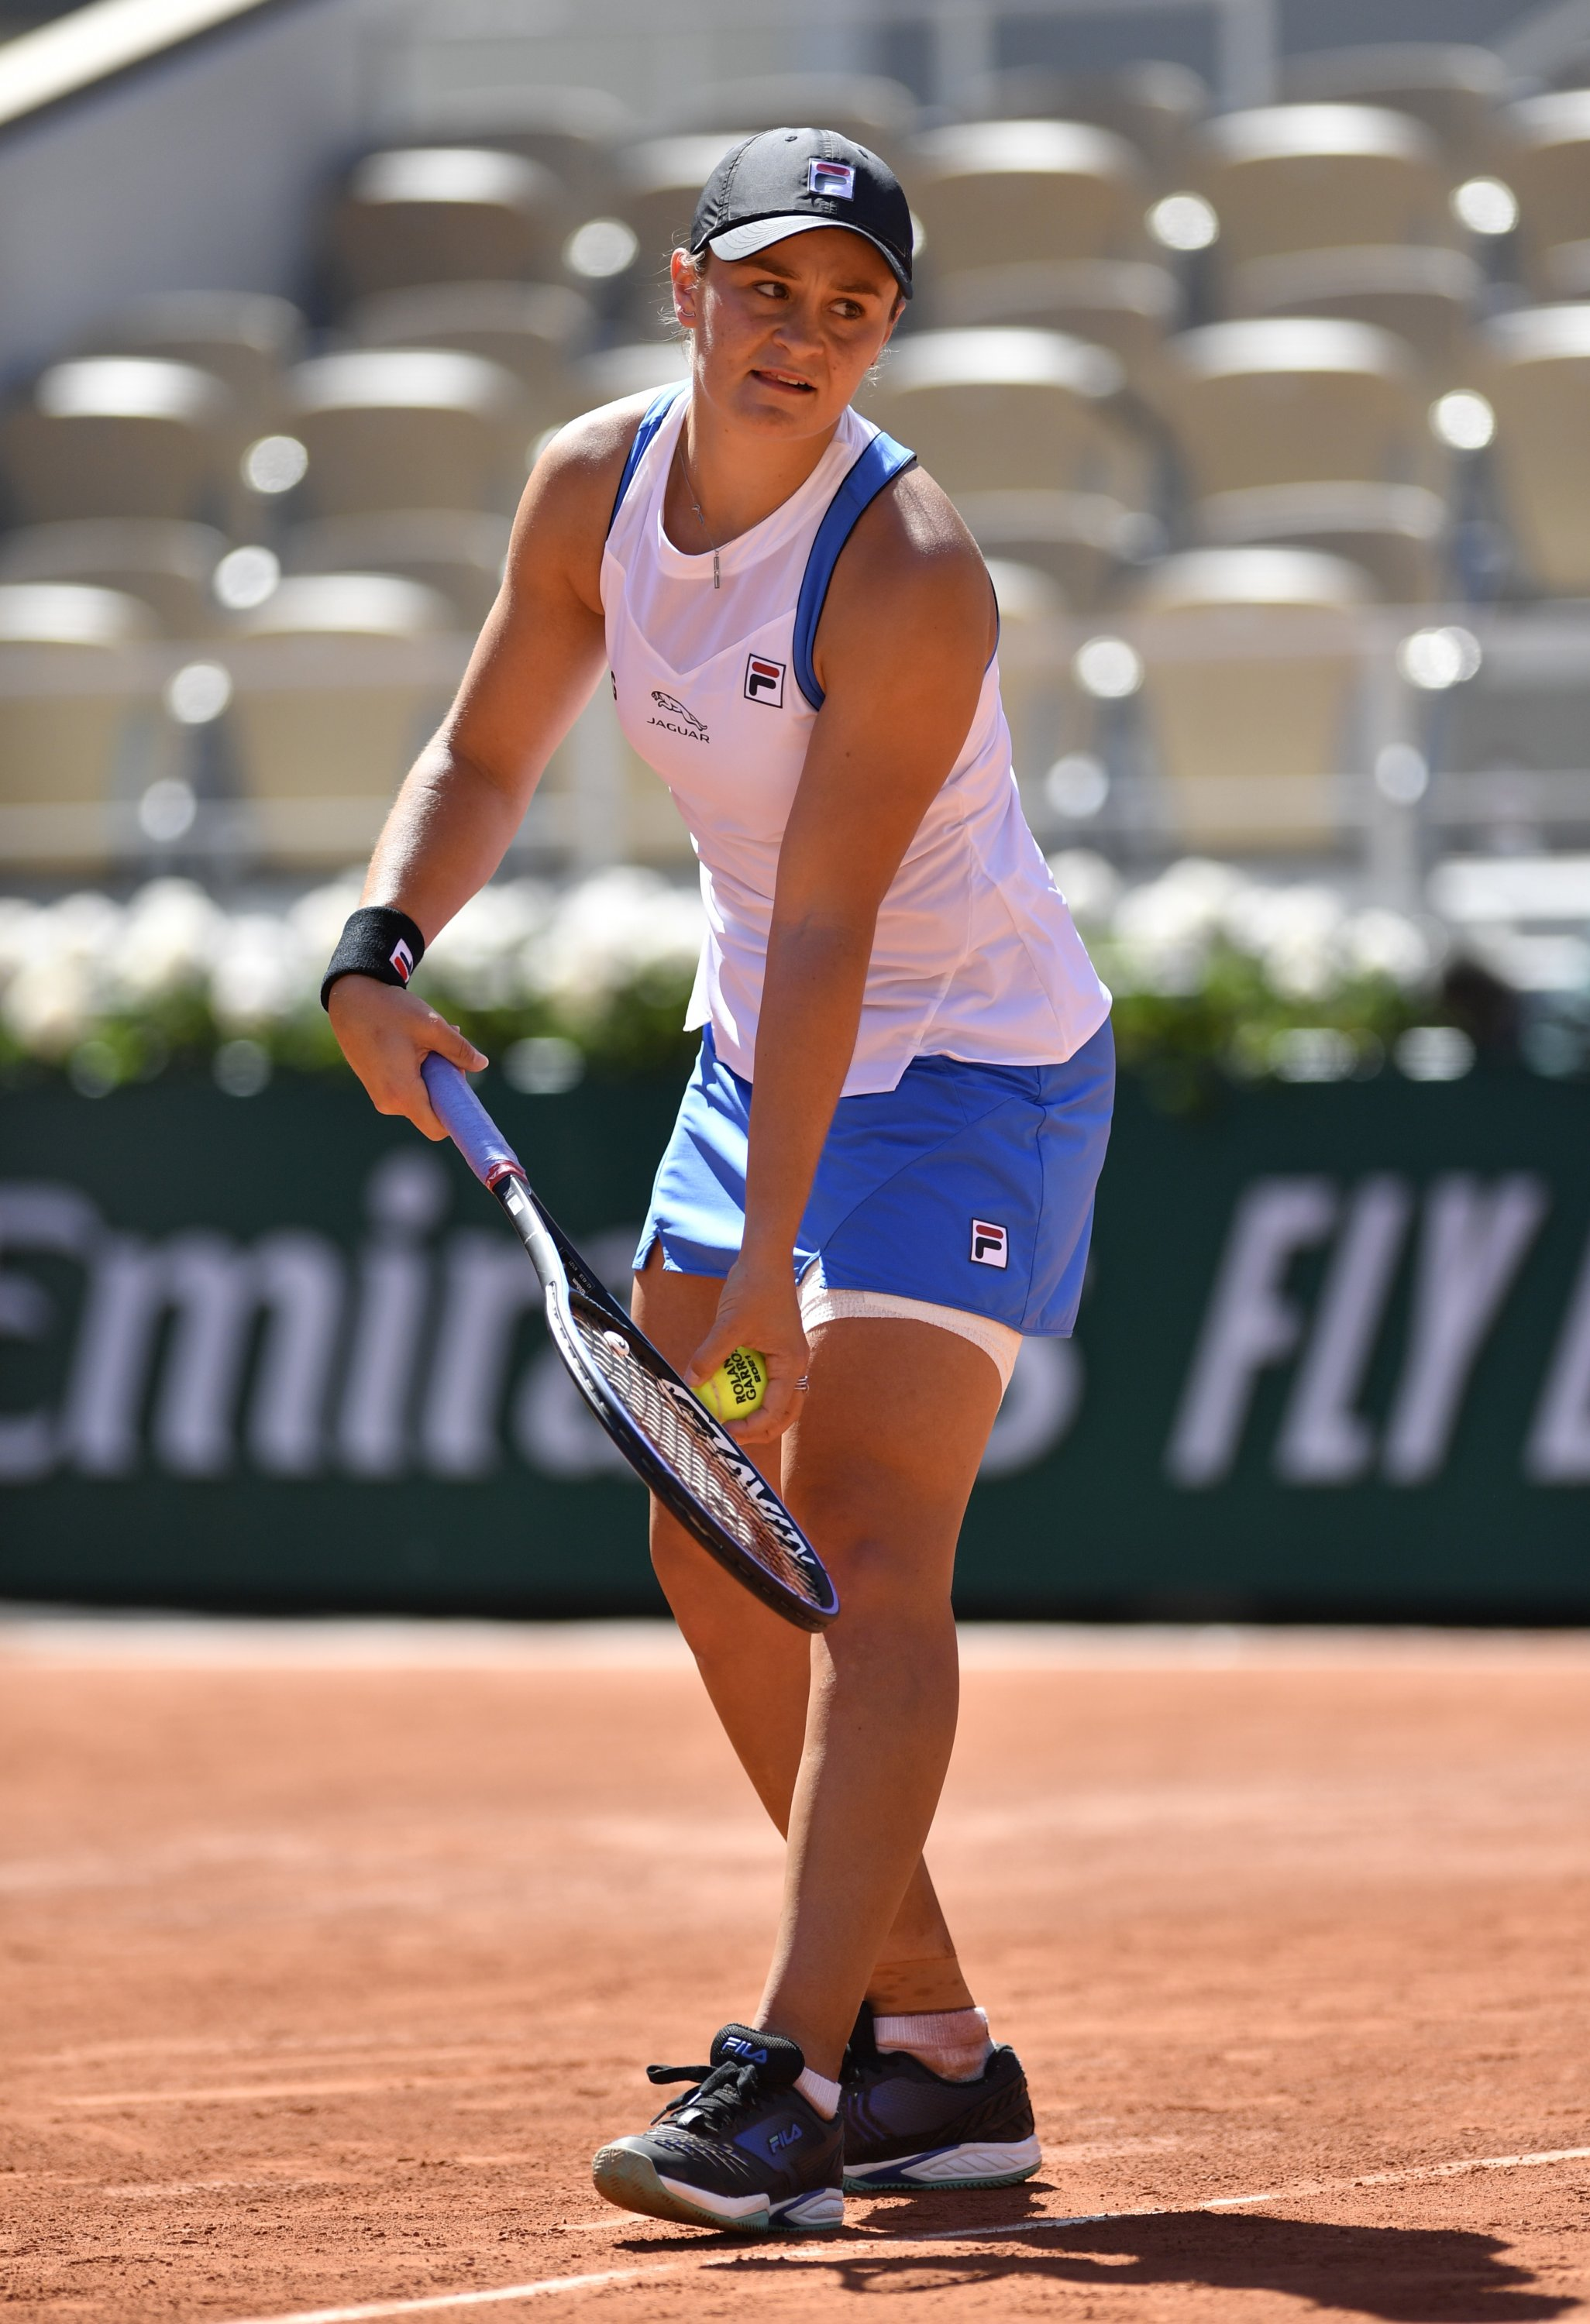 Australia's Ashleigh Barty serves against Bernarda Pera in their French Open first-round match, Paris, France, June 1, 2021. (AA Photo)